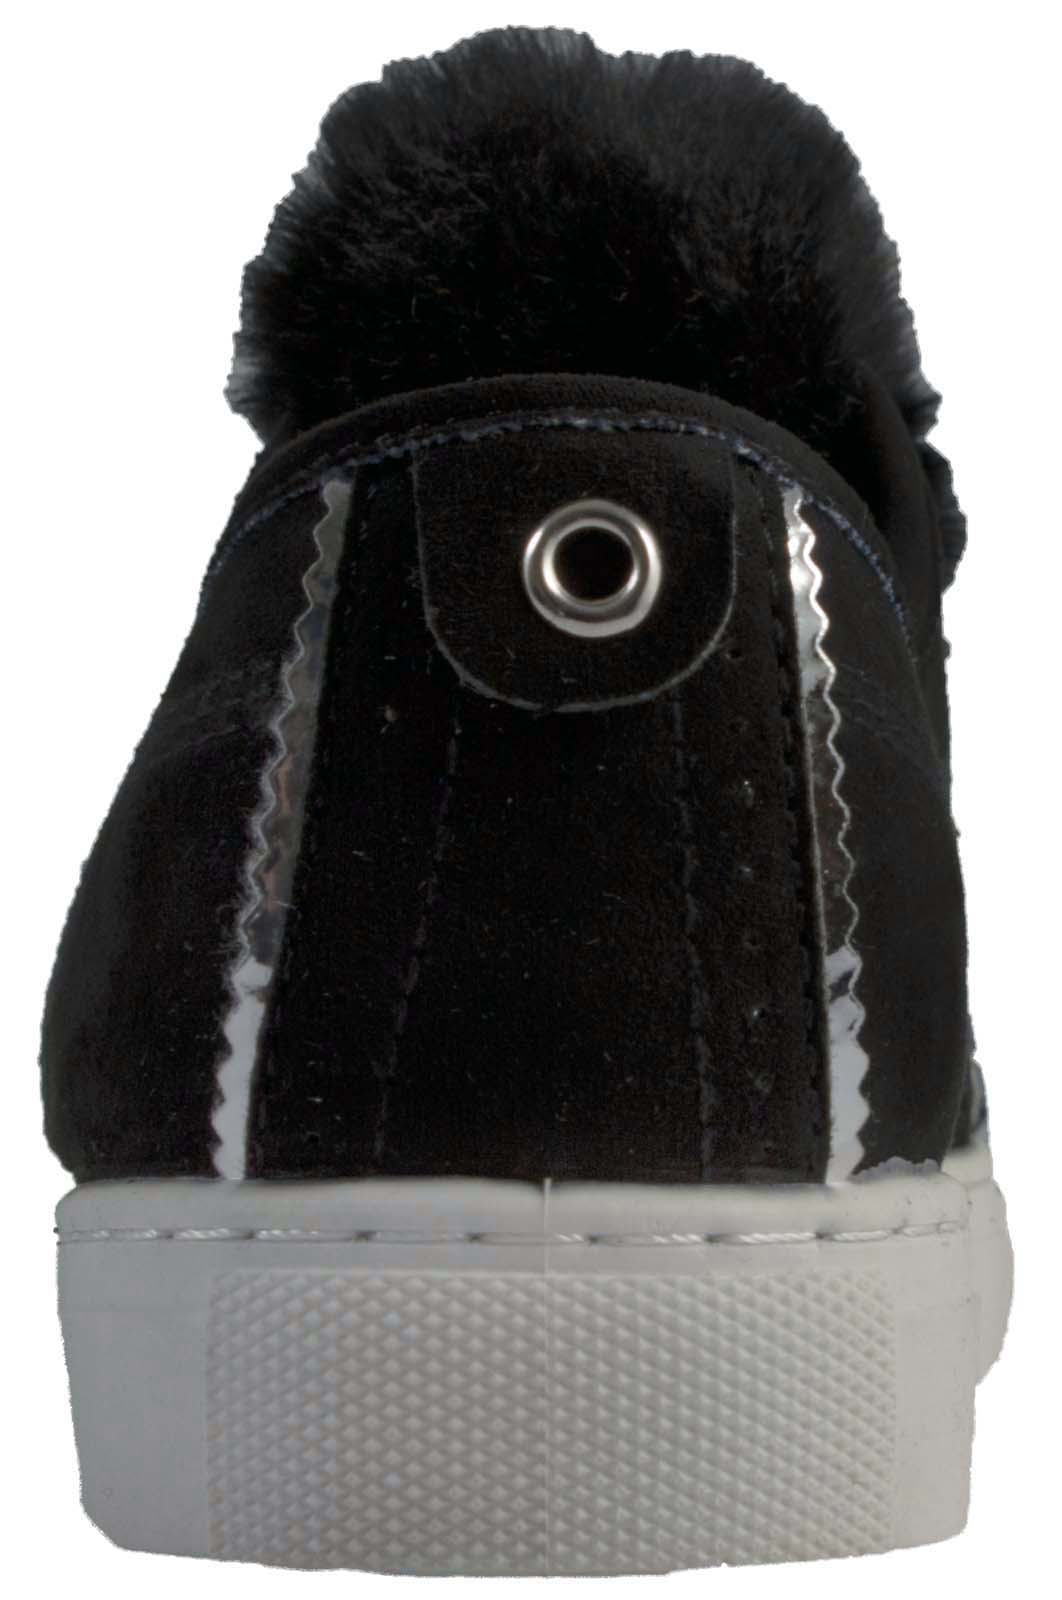 Girls black Skater Trainer Pump Lace Up with pom poms Fashion solid black sole